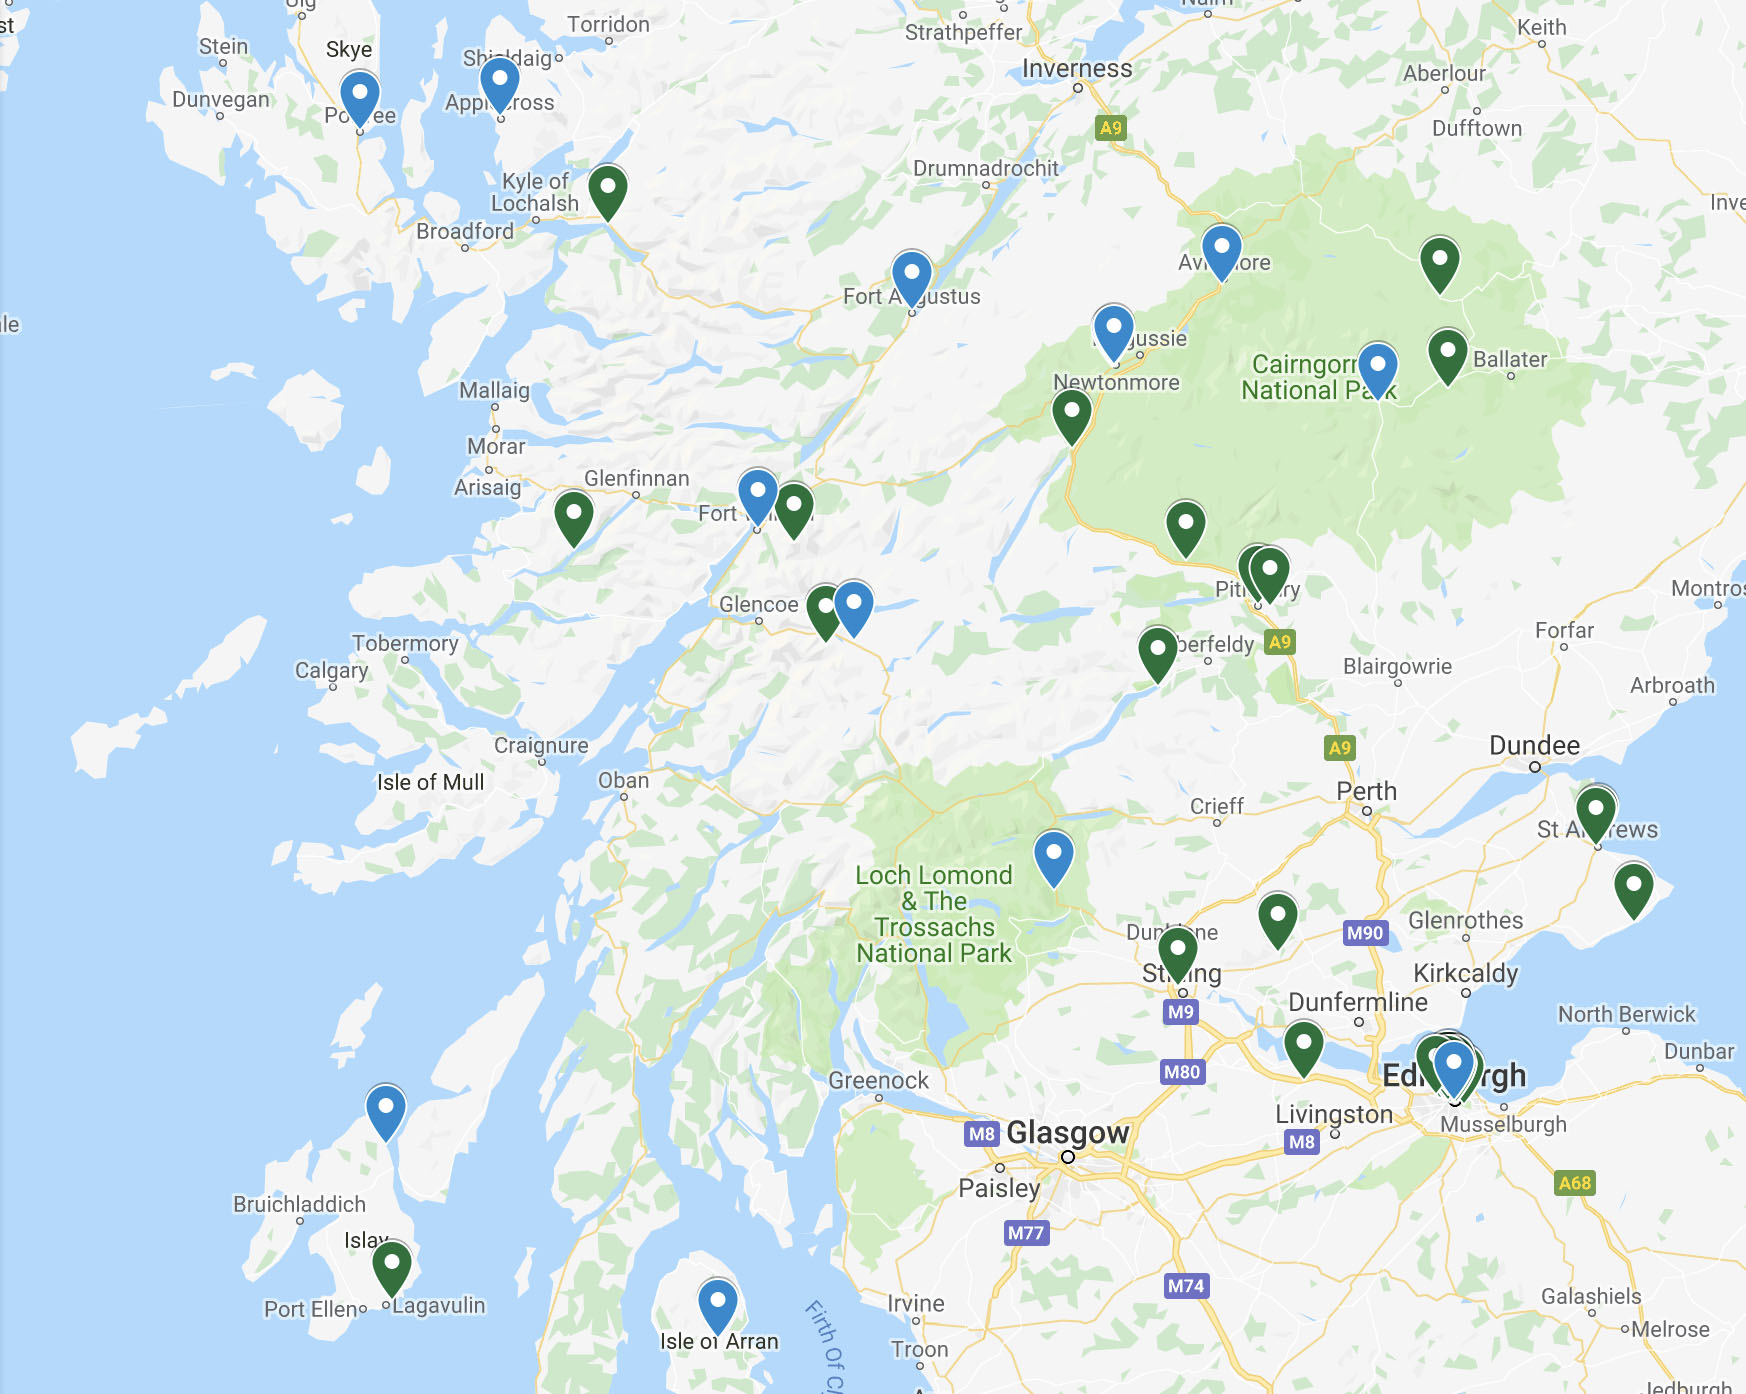 Places to stay and visit in Scotland - Check out our map of good places.